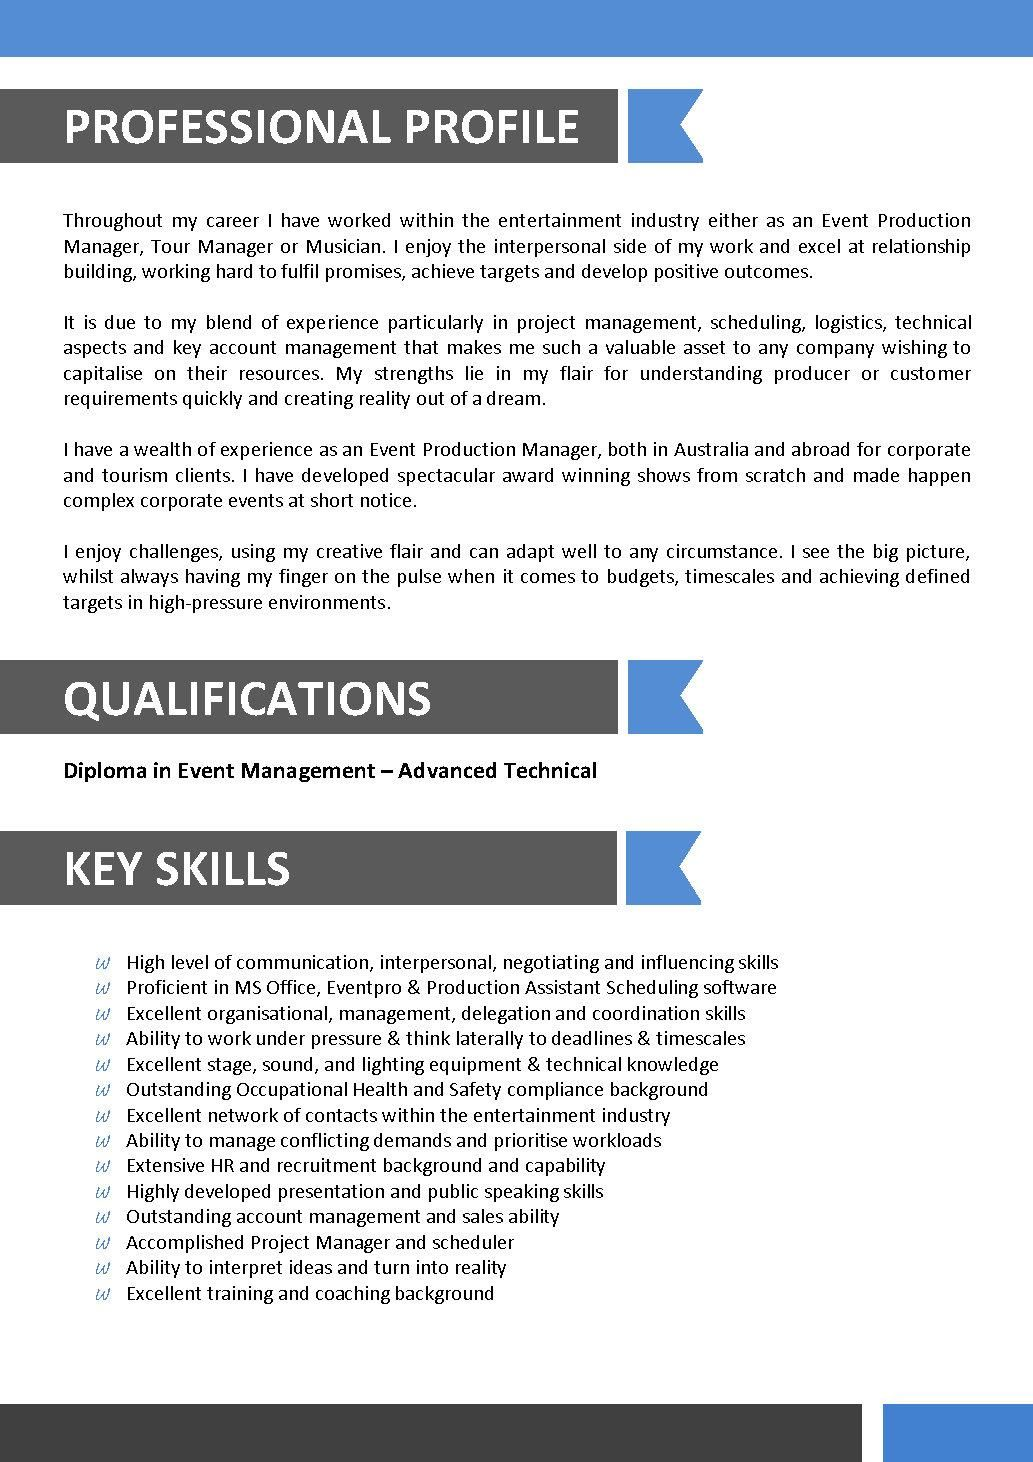 sample resume for entertainment industry best template templates free skills trauma Resume Entertainment Skills Resume